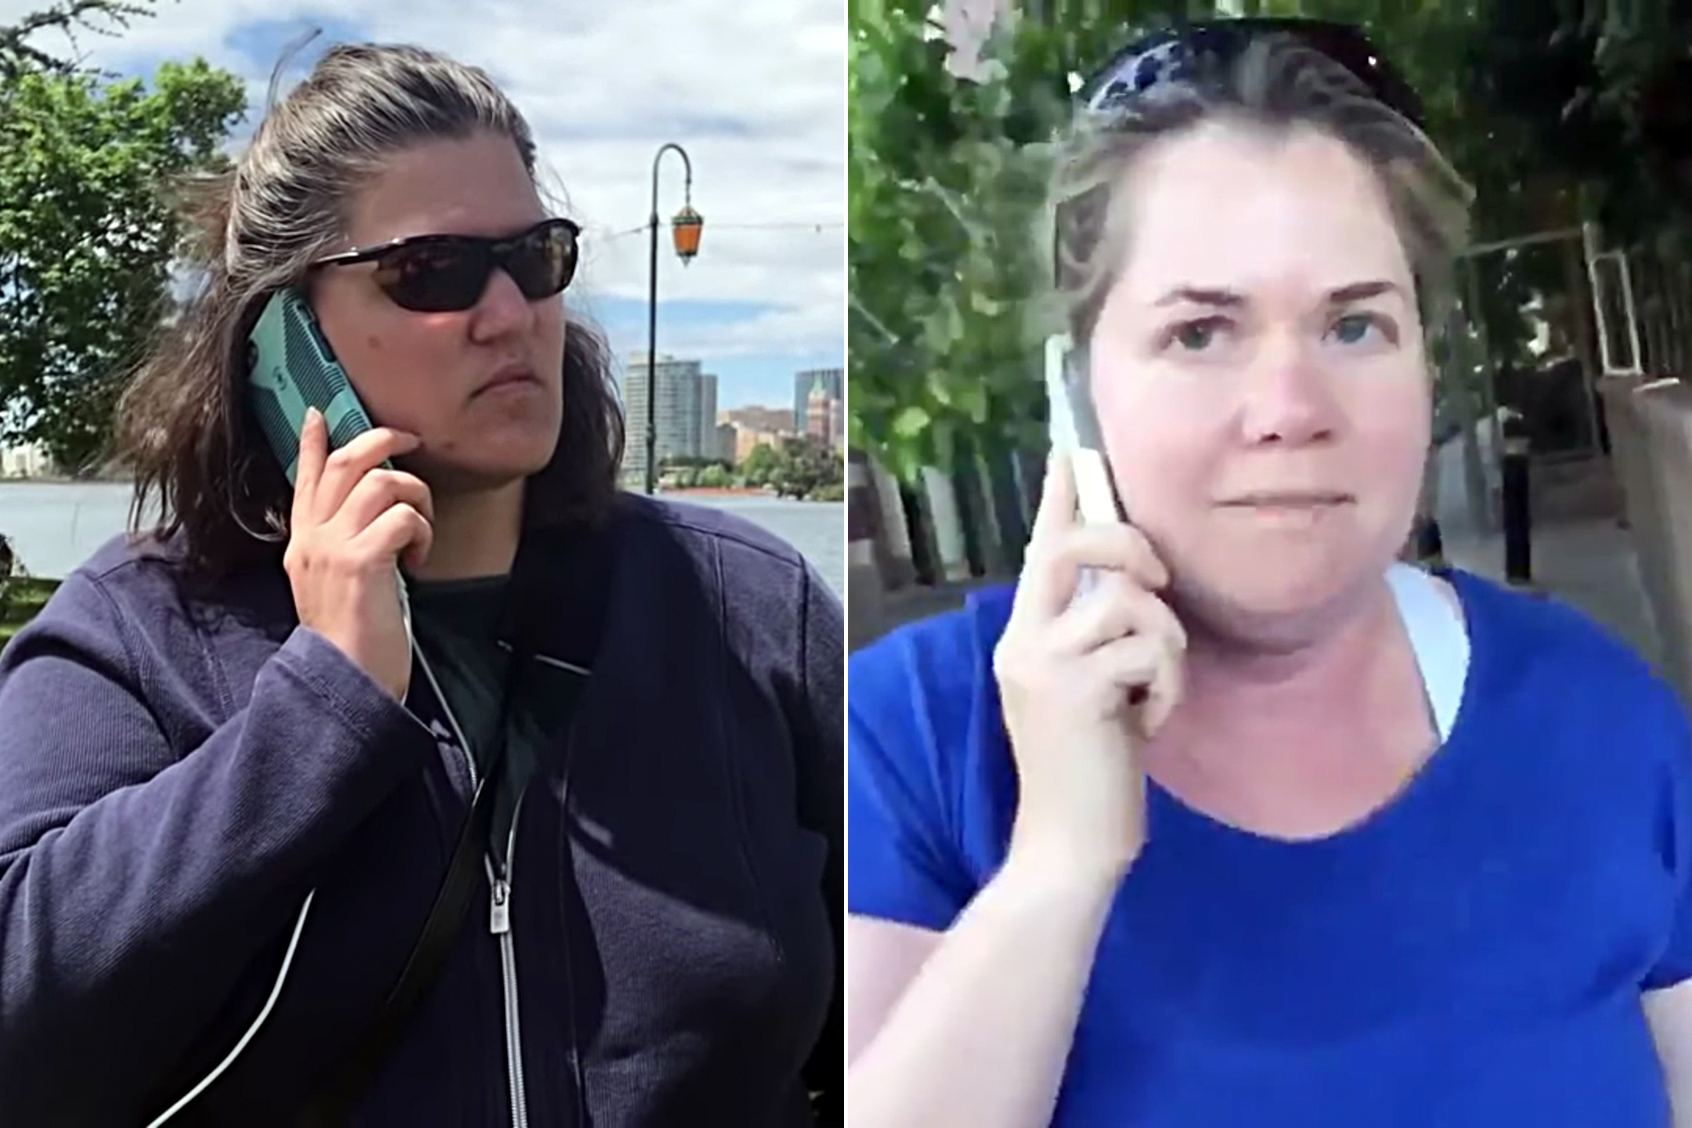 Bbq becky and permit patty